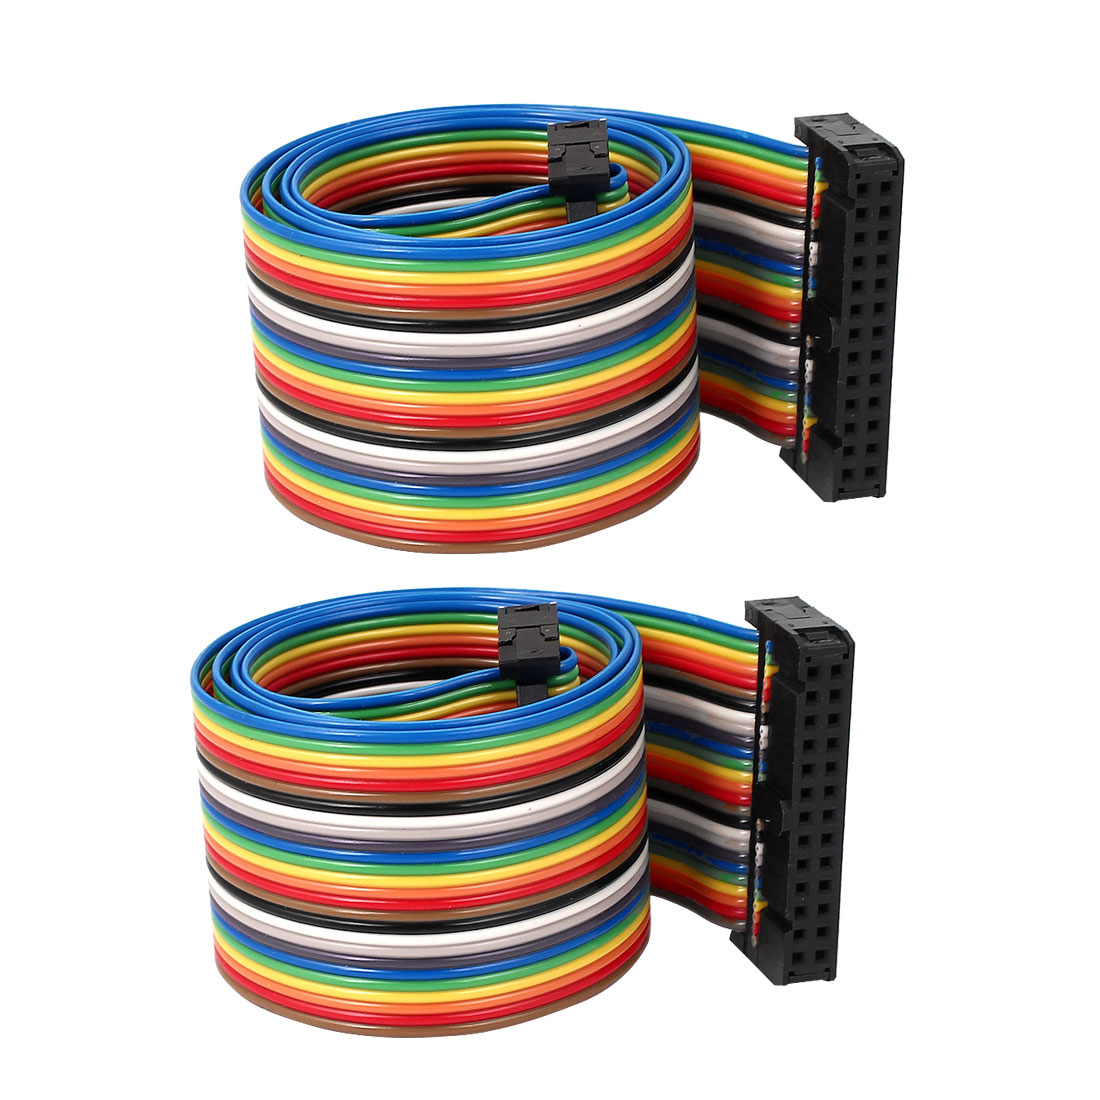 50cm 26 Pin 26 Way F/F Connector IDC Flat Rainbow Color Ribbon Cable for DIY 2pcs